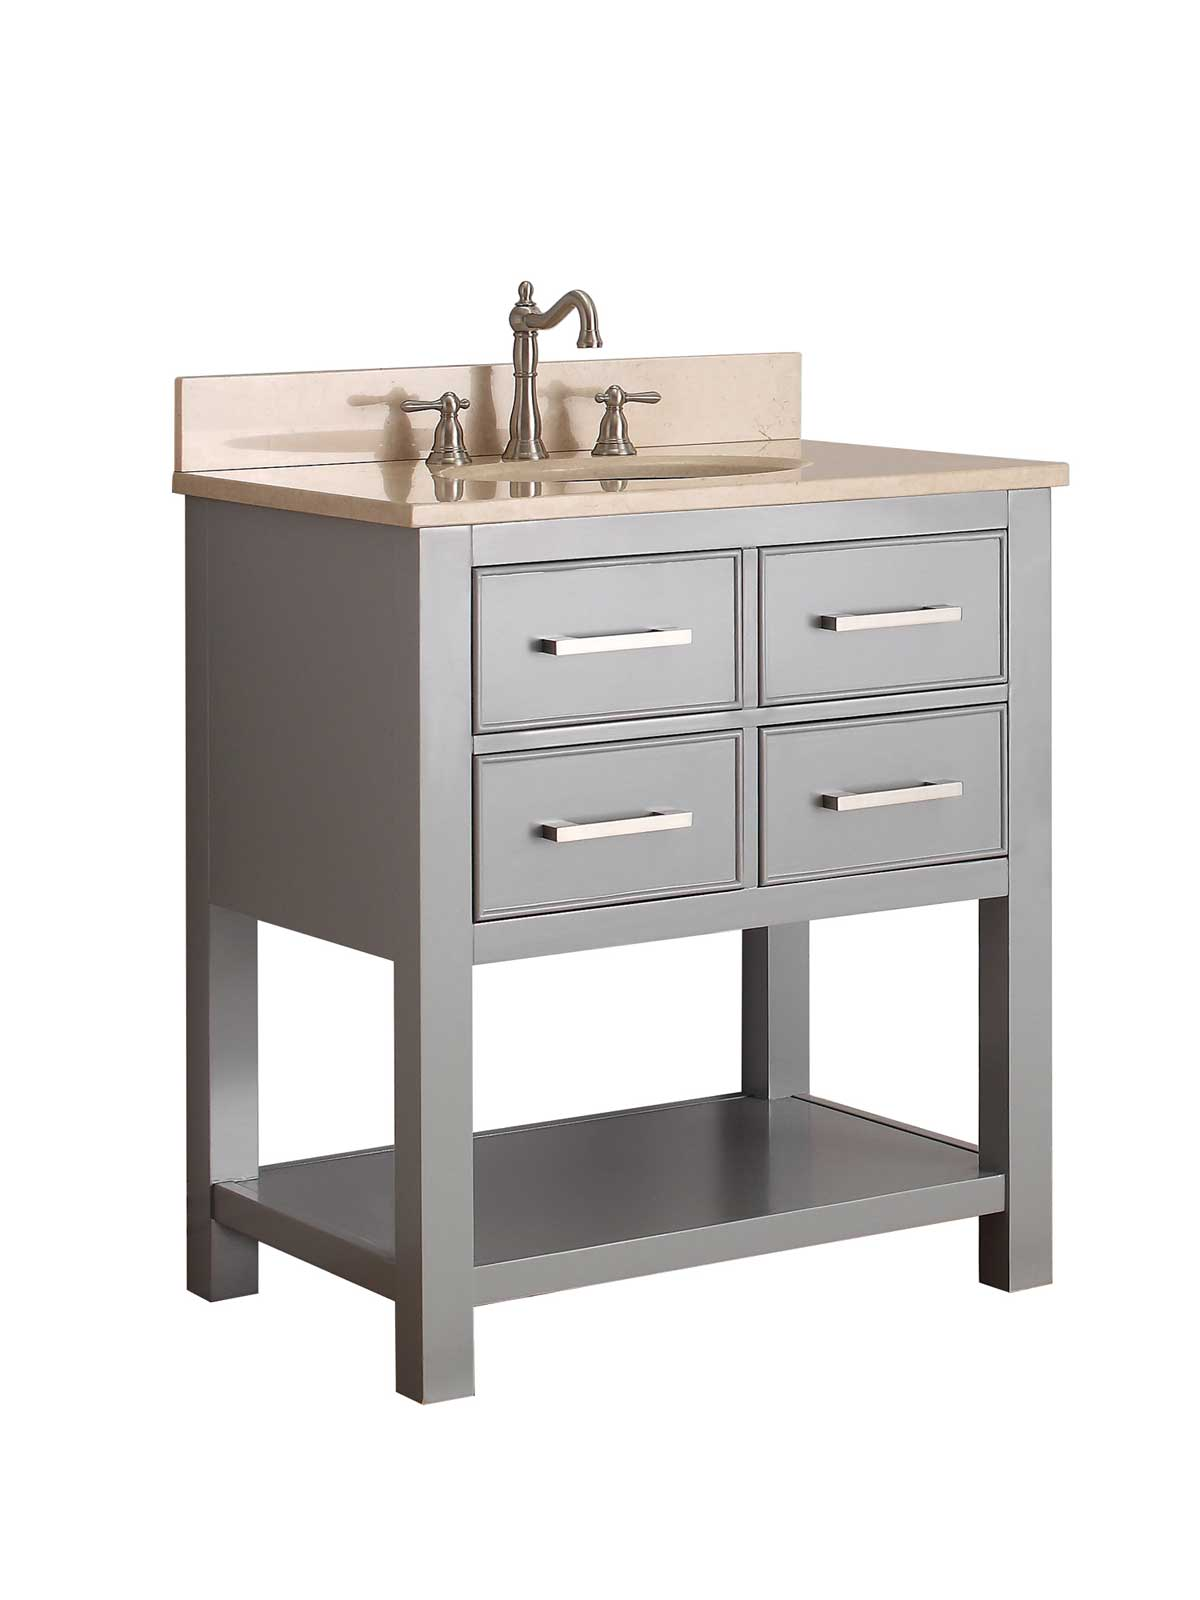 "31"" Begonia Single Bath Vanity - Chilled Gray - Chilled Gray with Galala Beige Marble Top"